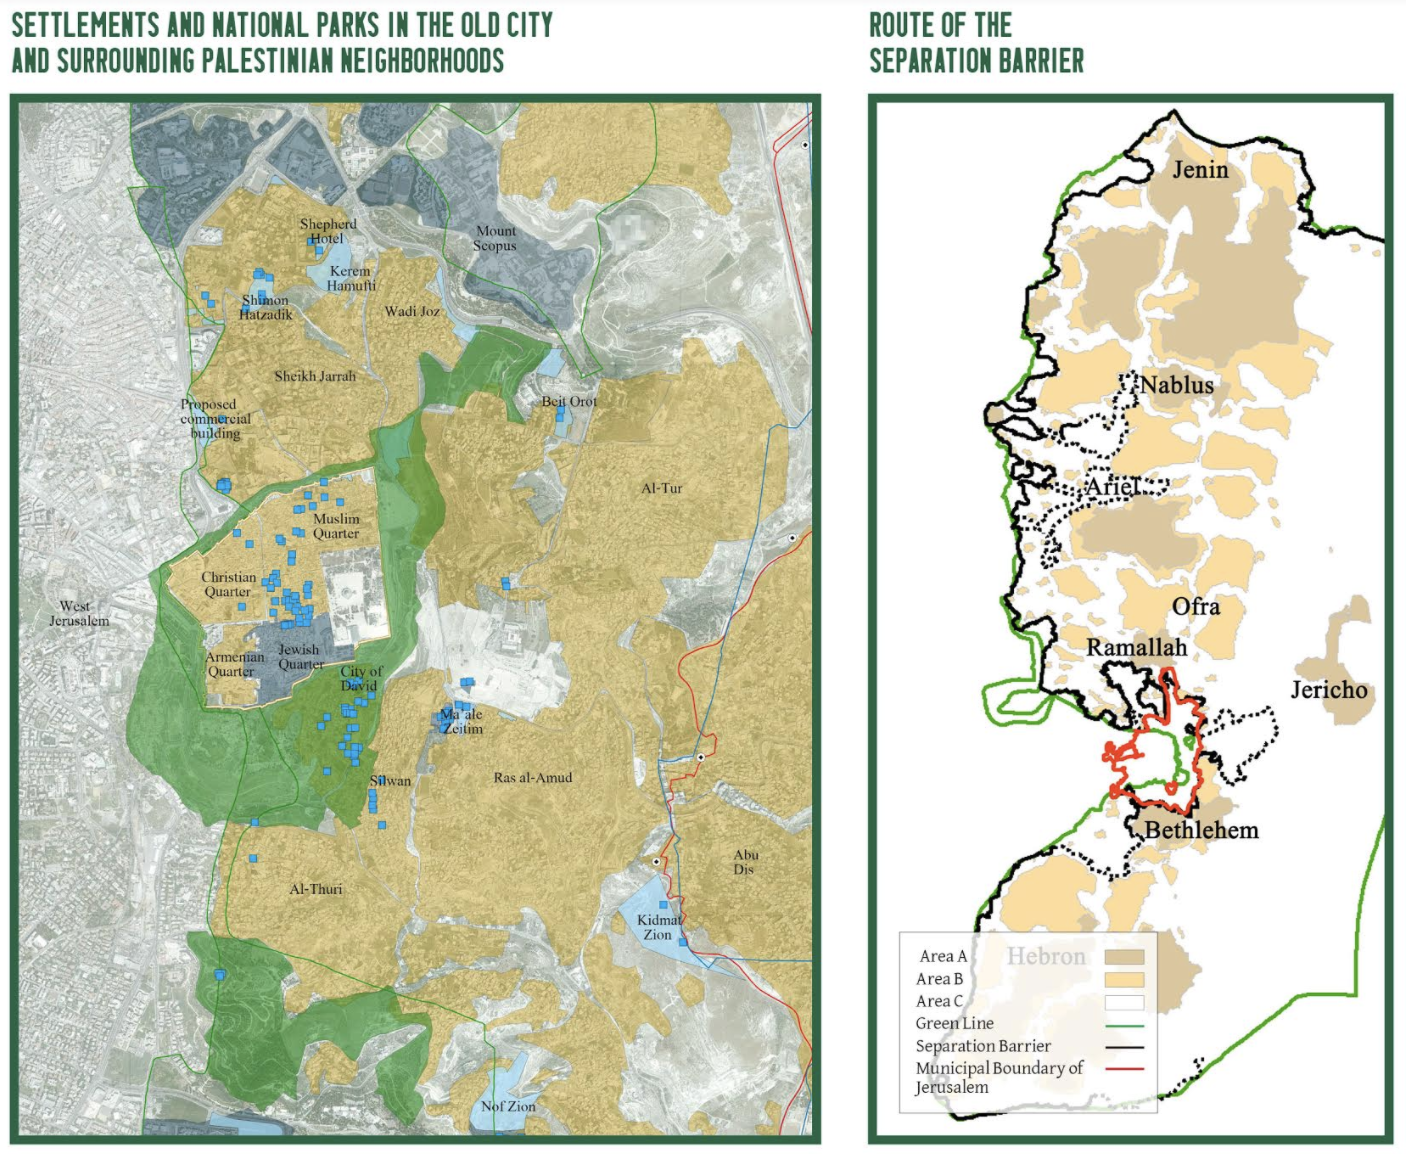 Map of settlements in East Jerusalem. (Courtesy of Ir Amim)